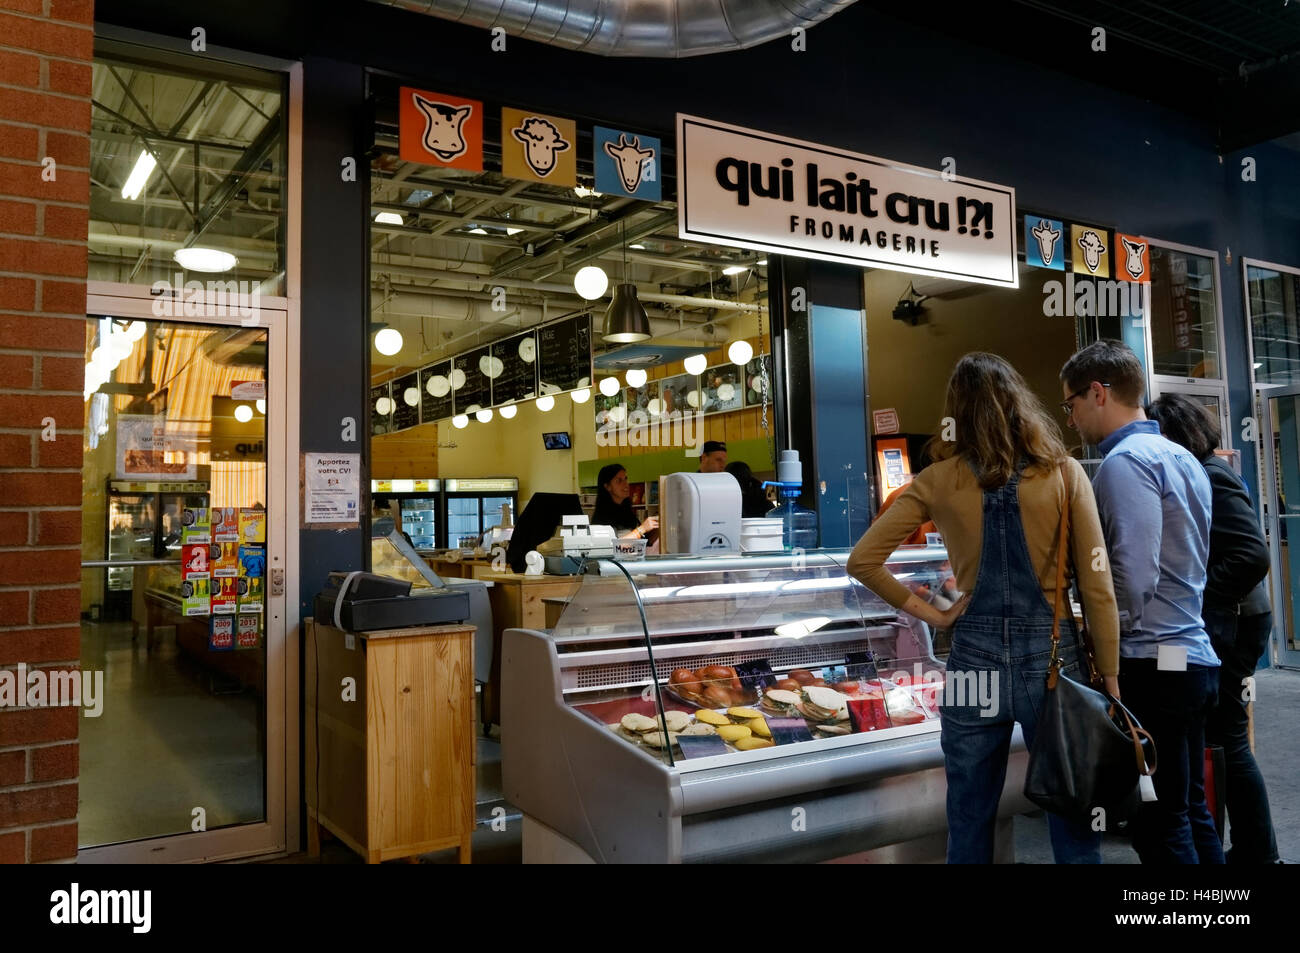 People at a cheese shop or fromagerie at the Jean Talon Market, Montreal, Quebec, Canada - Stock Image